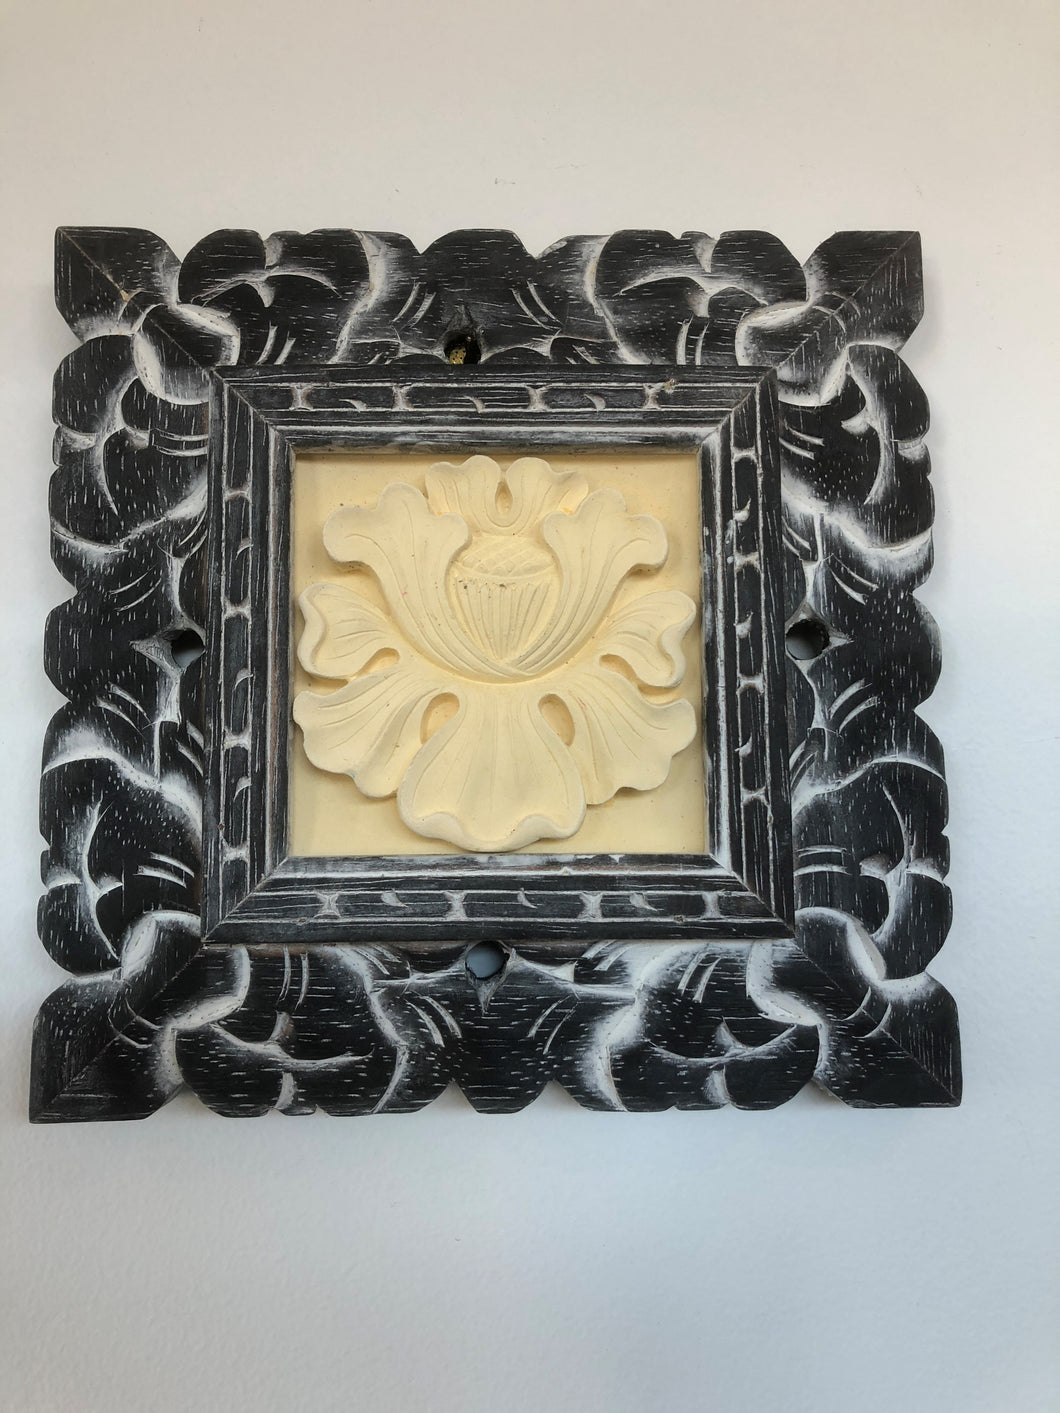 Balinese Hand Carved Limestone Flower Wall Tile in Timber Frame